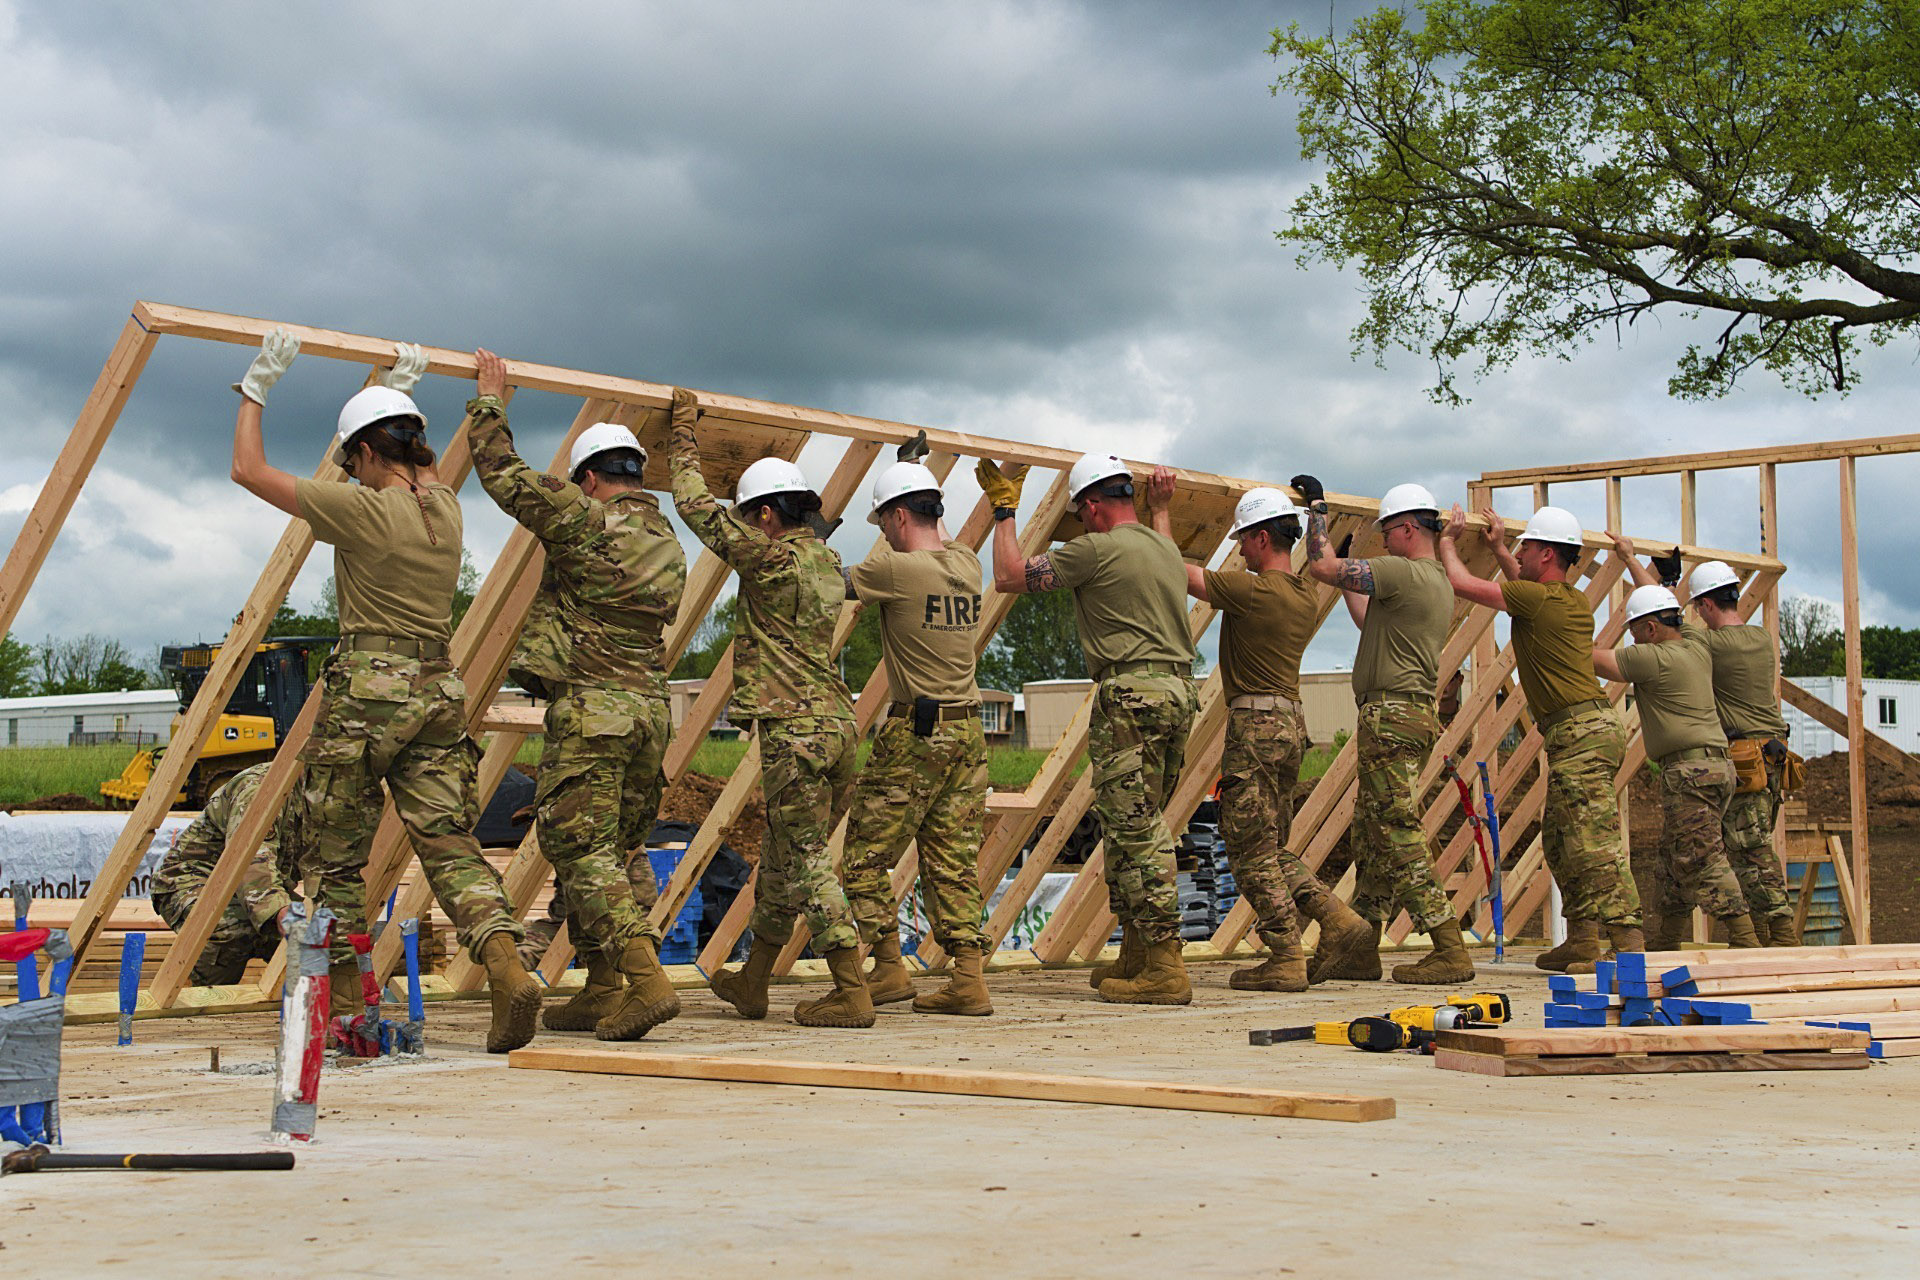 Airmen from all trades, with the 176th Wing's Civil Engineer Squadron, raise the second exterior wall in unison as they construct the first home in the Cherokee Veterans Housing Initiative in Tahlequah, Okla., May 18, 2021. The initiative is a collaboration between the Department of Defense's Innovative Readiness Training program and the Cherokee Nation that constructs new single-family homes and supporting infrastructure for eligible Cherokee Nation veterans and their families. (Staff Sgt. Clay Cook/Air National Guard)